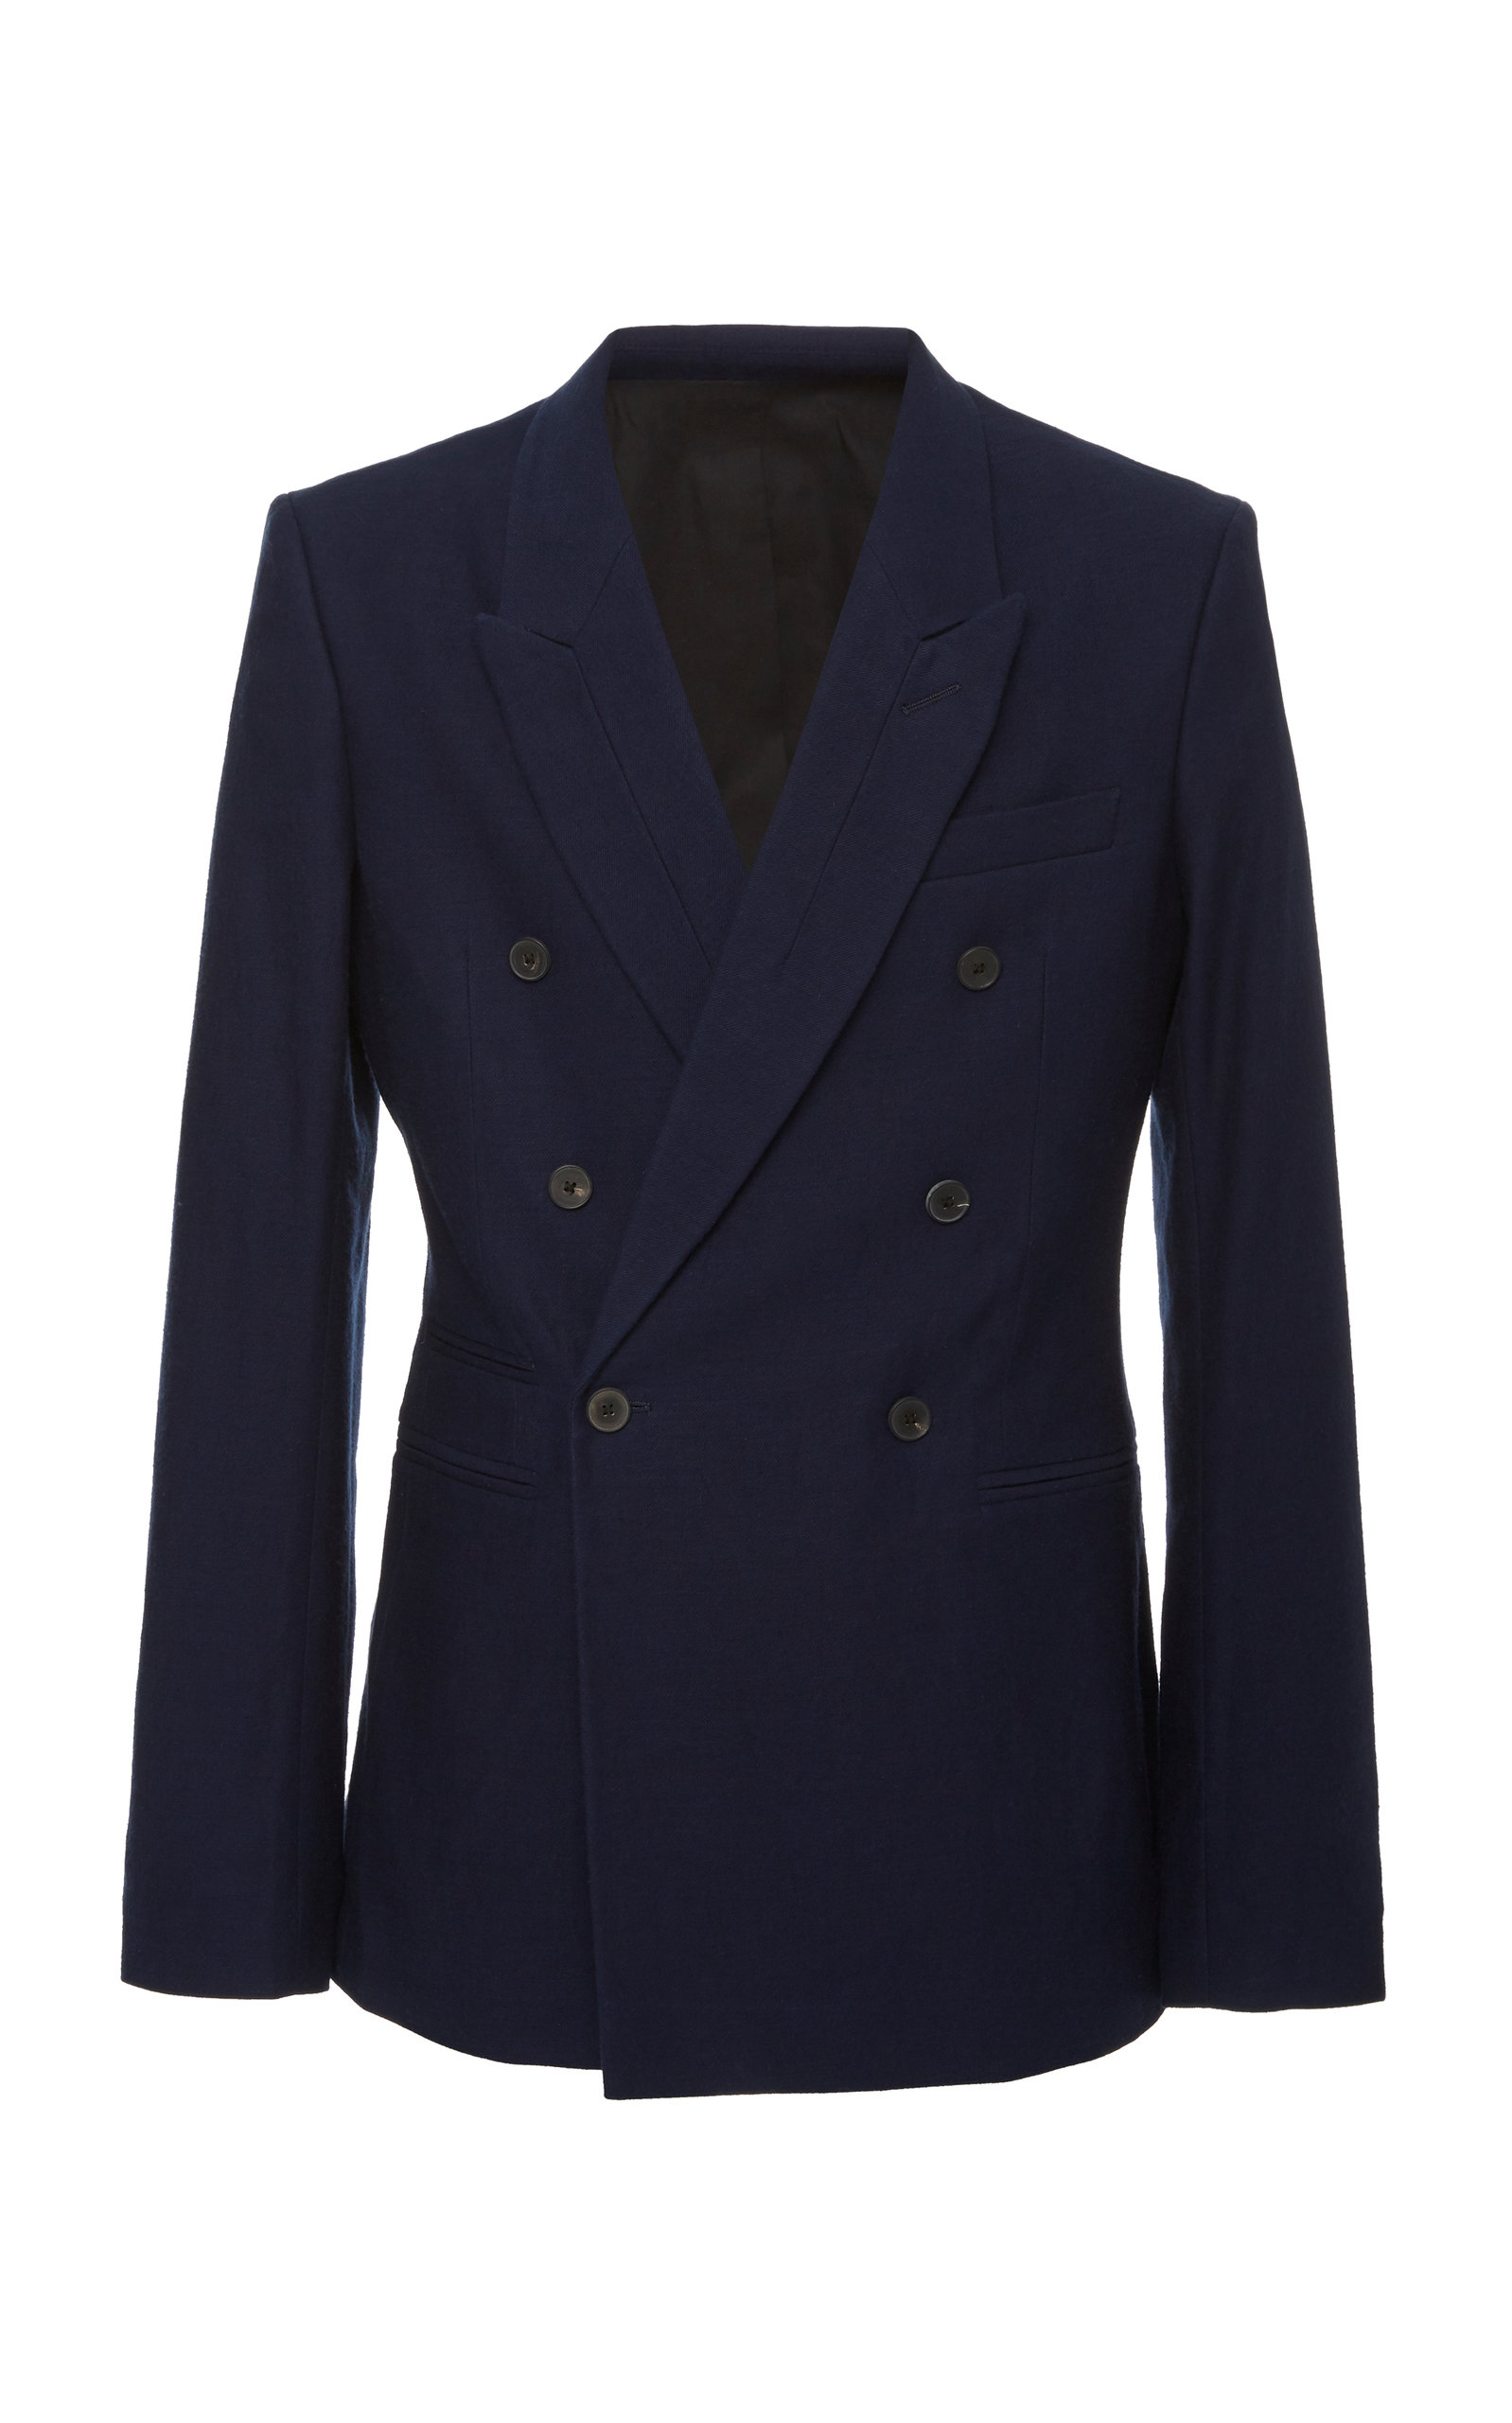 Haider Ackermann Blazers DOUBLE-BREASTED COTTON BLAZER